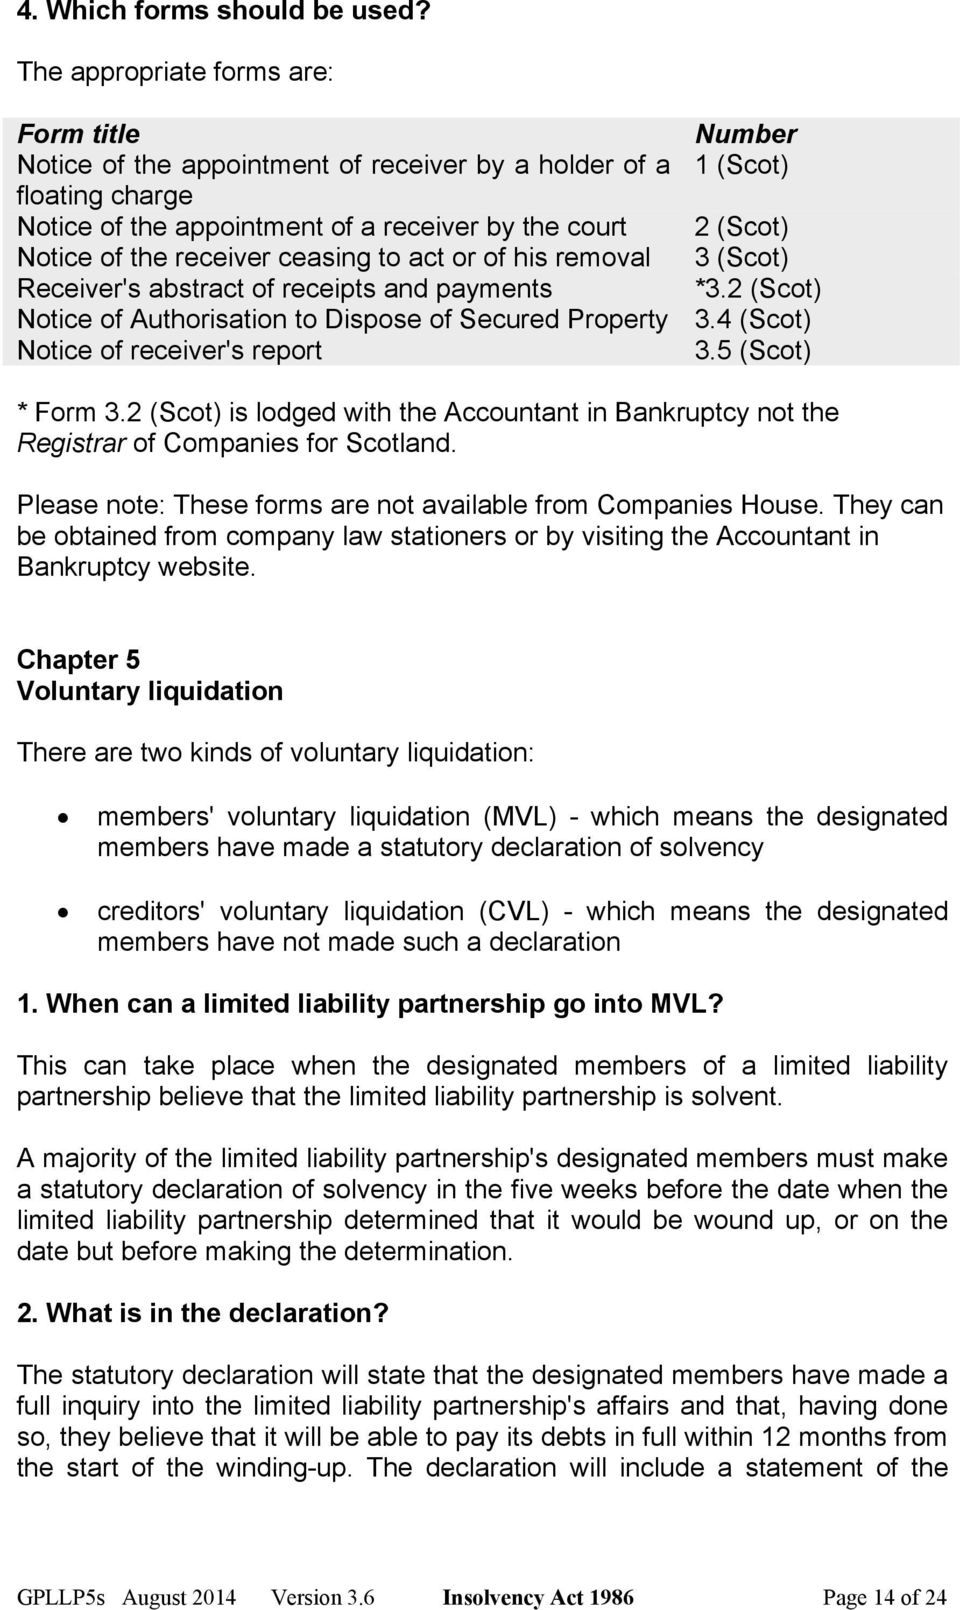 the receiver ceasing to act or of his removal 3 (Scot) Receiver's abstract of receipts and payments *3.2 (Scot) Notice of Authorisation to Dispose of Secured Property 3.